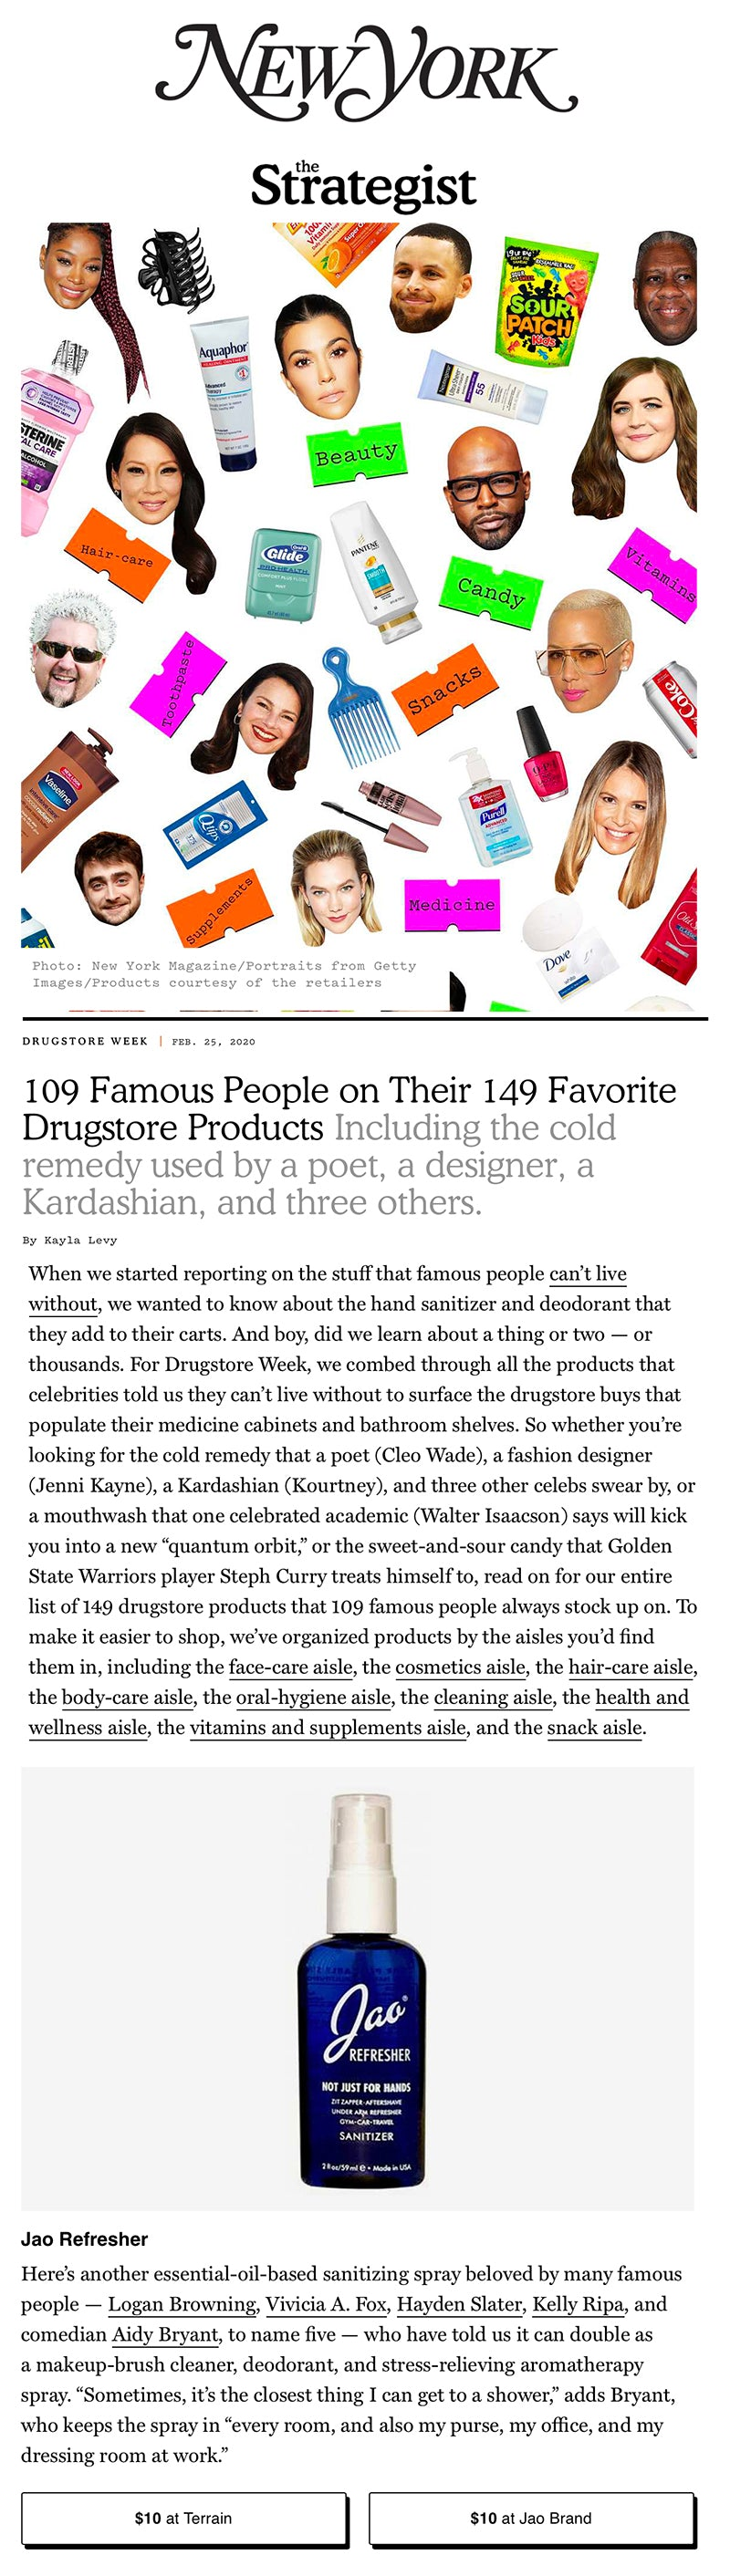 Jao Hand Sanitizer Refresher NY Magazine 109 Famous People on Their 149 Favorite Drugstore Products Share Tweet Pin It +